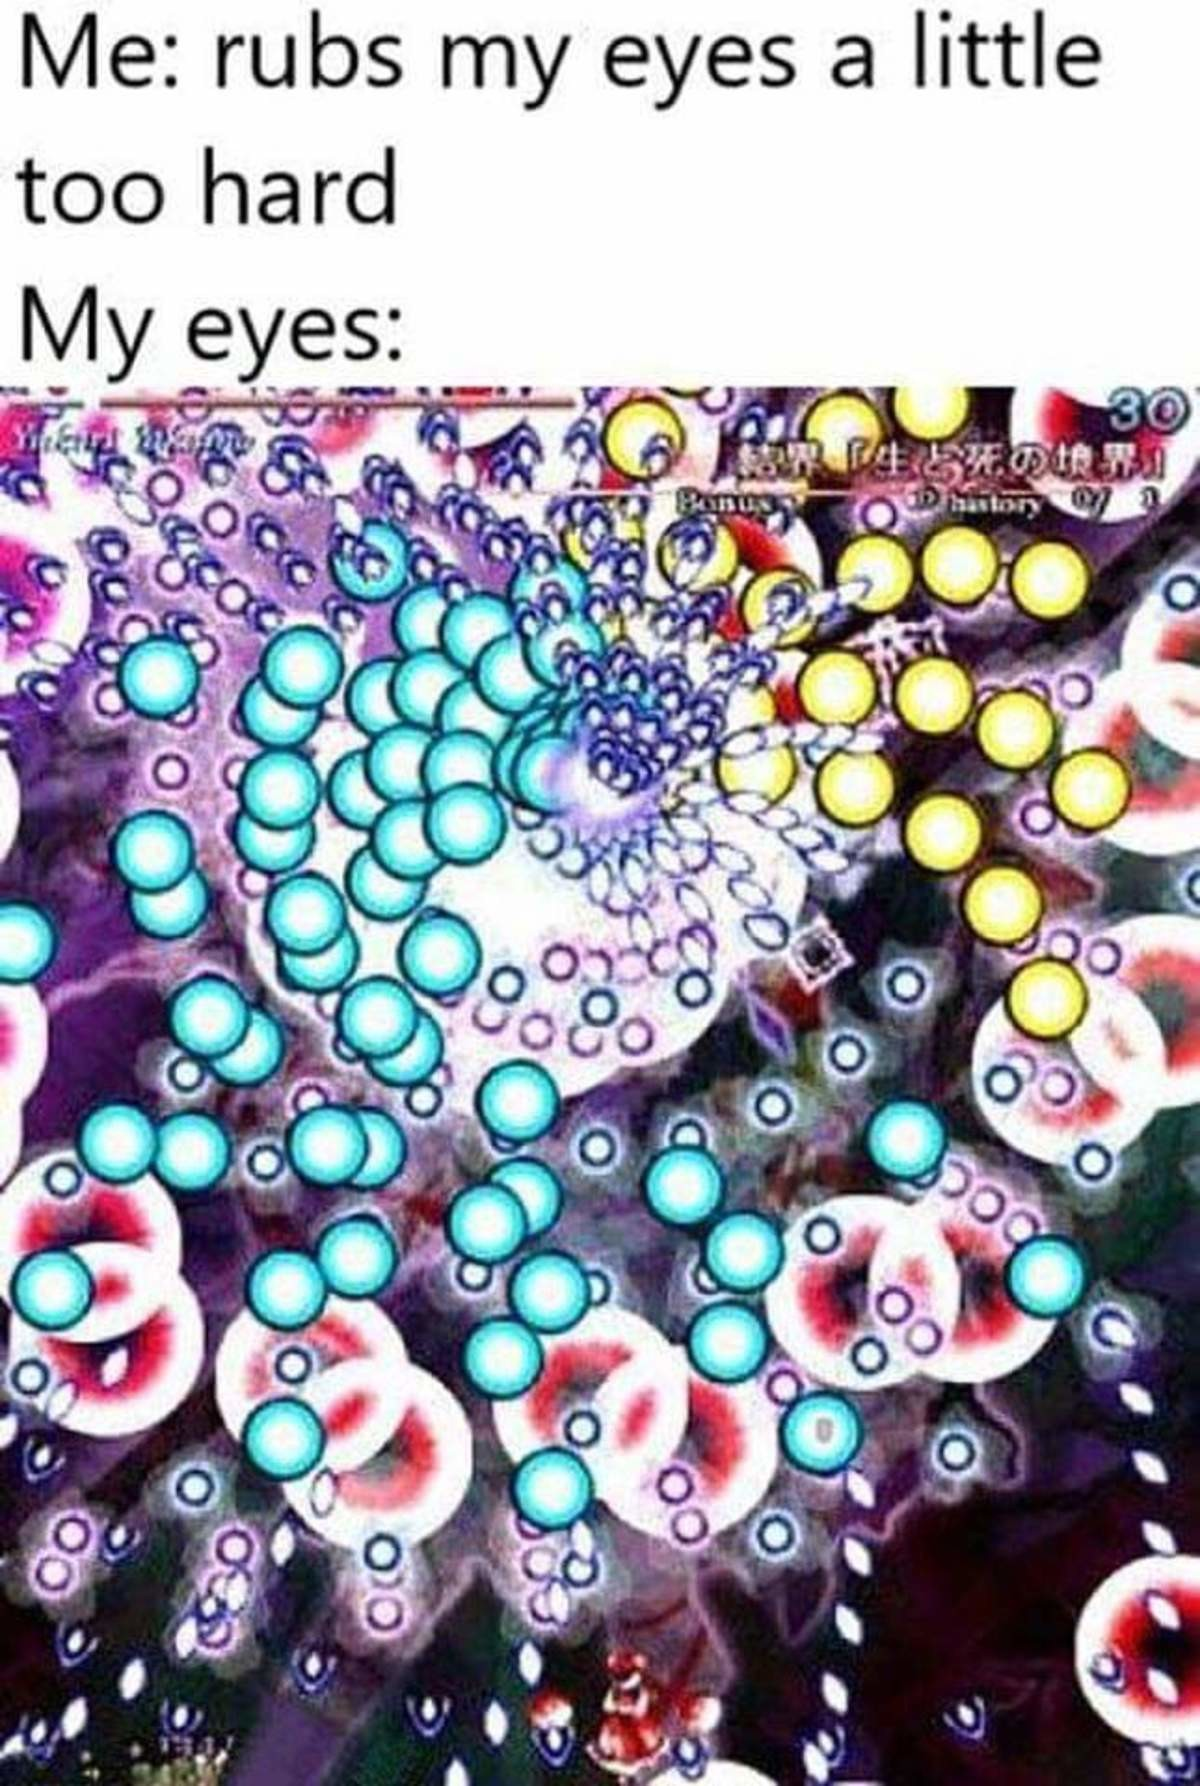 Eyes. .. man i need to go play a good bullet hell game did some adderall and played realm of the mad god once, holy i was untouchable